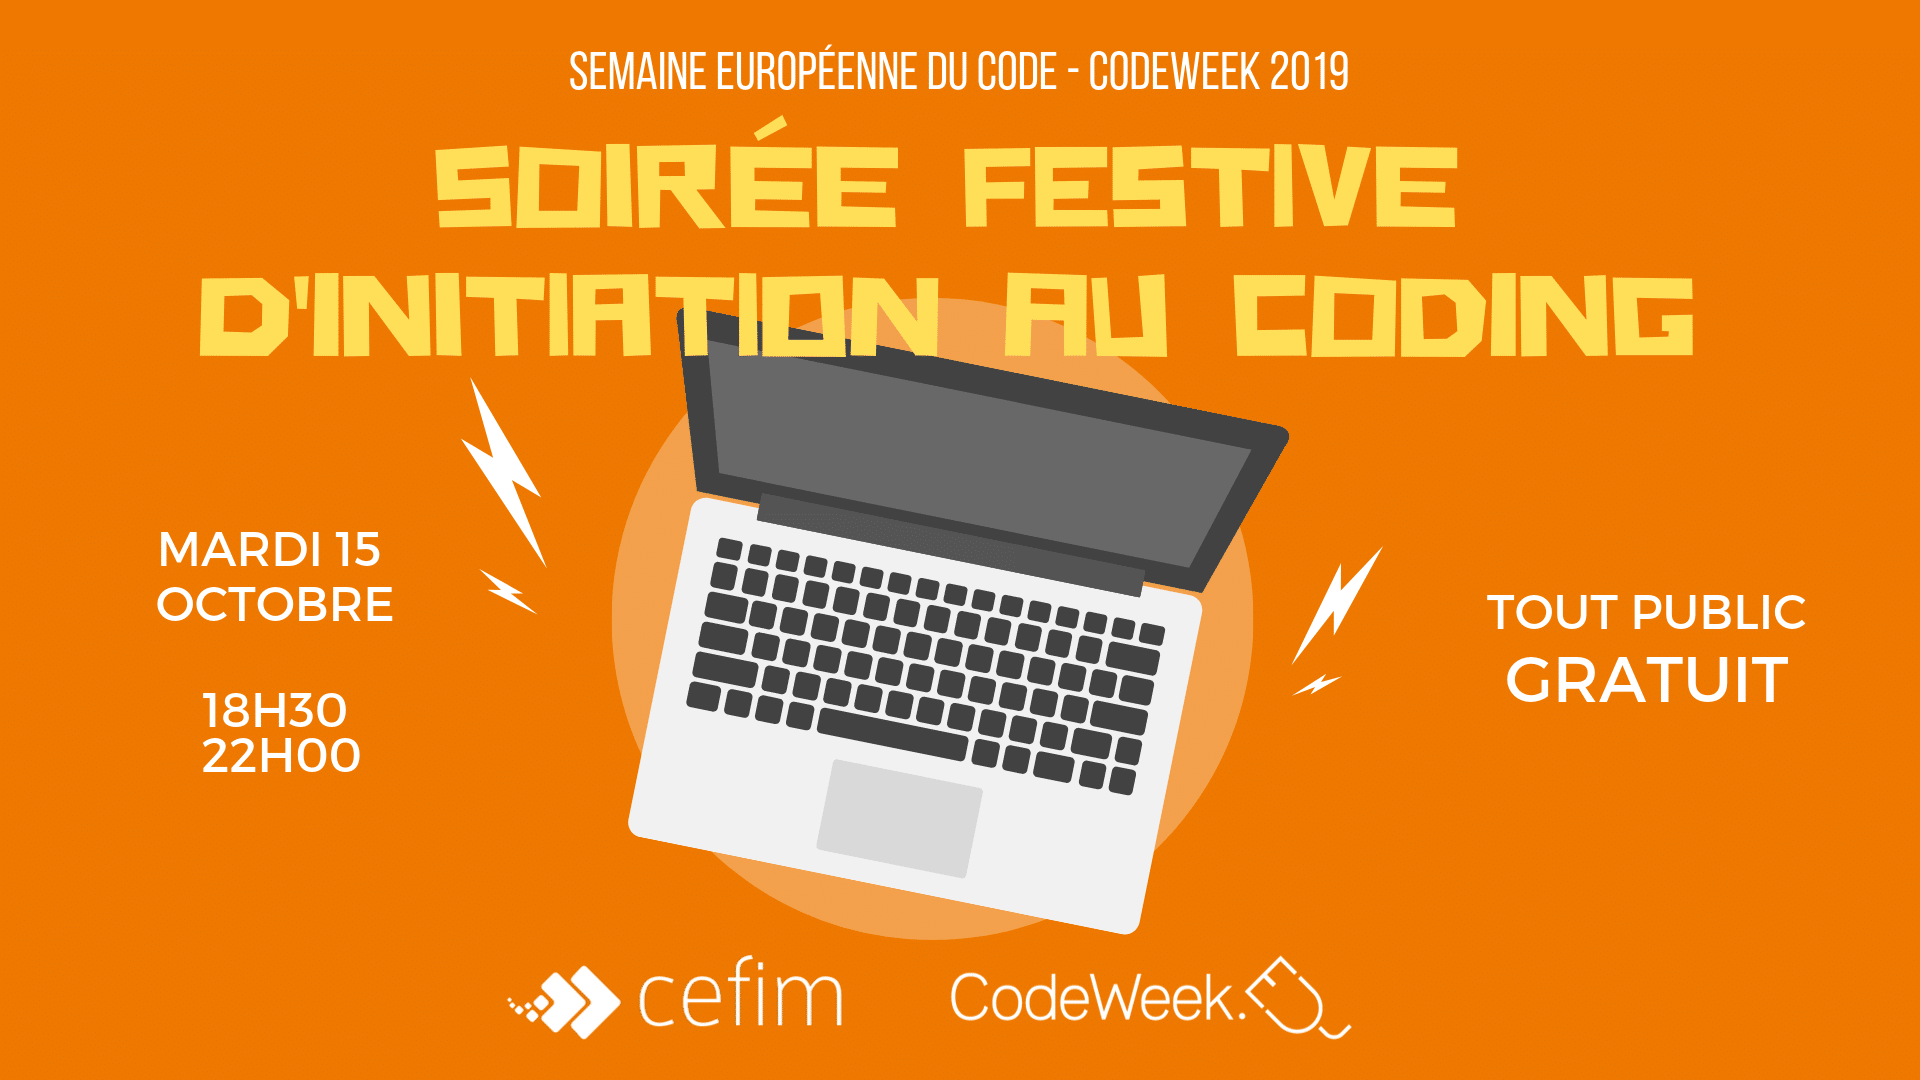 CodeWeek 2019 - cover event Facebook (2)